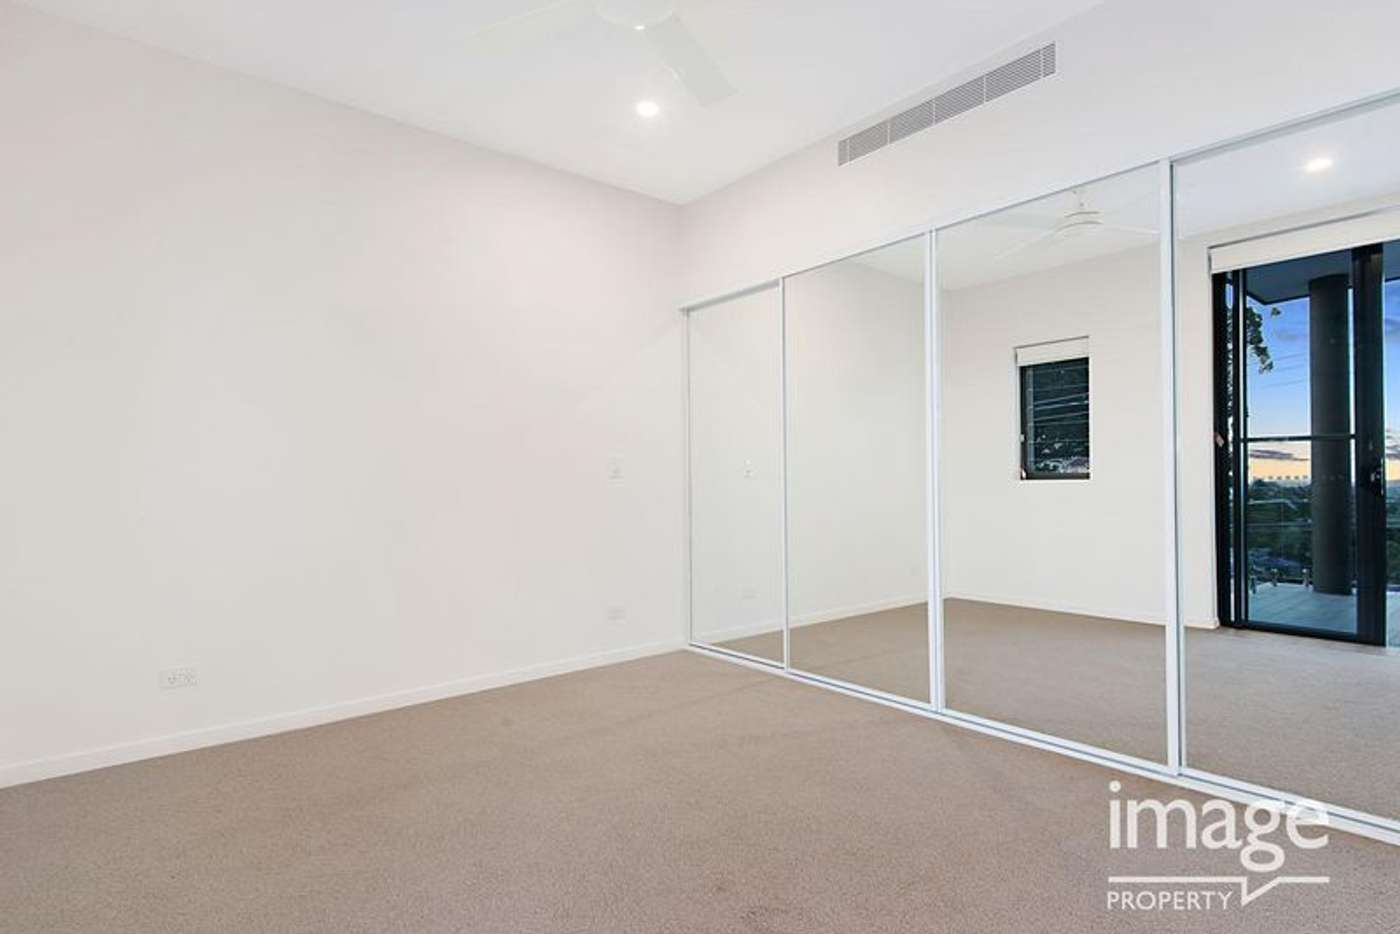 Sixth view of Homely house listing, 2301/23 Boundary Road, Bardon QLD 4065